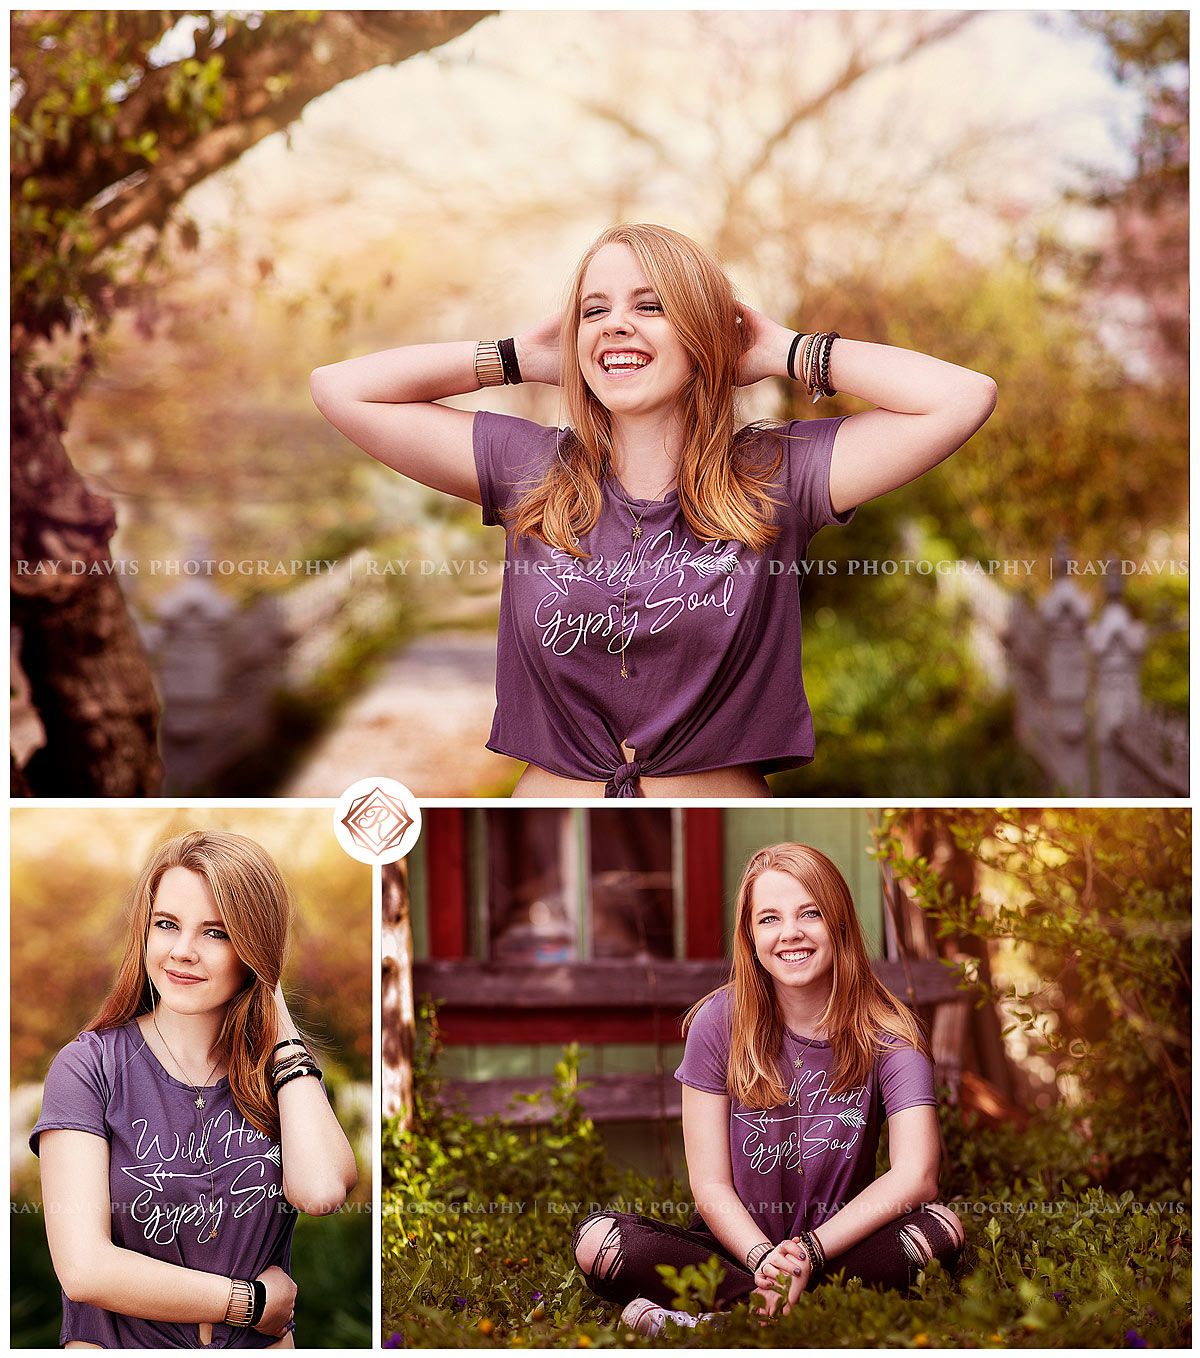 oldham county high school girl during spring portrait session with Louisville Senior Photographer Ray Davis Photography